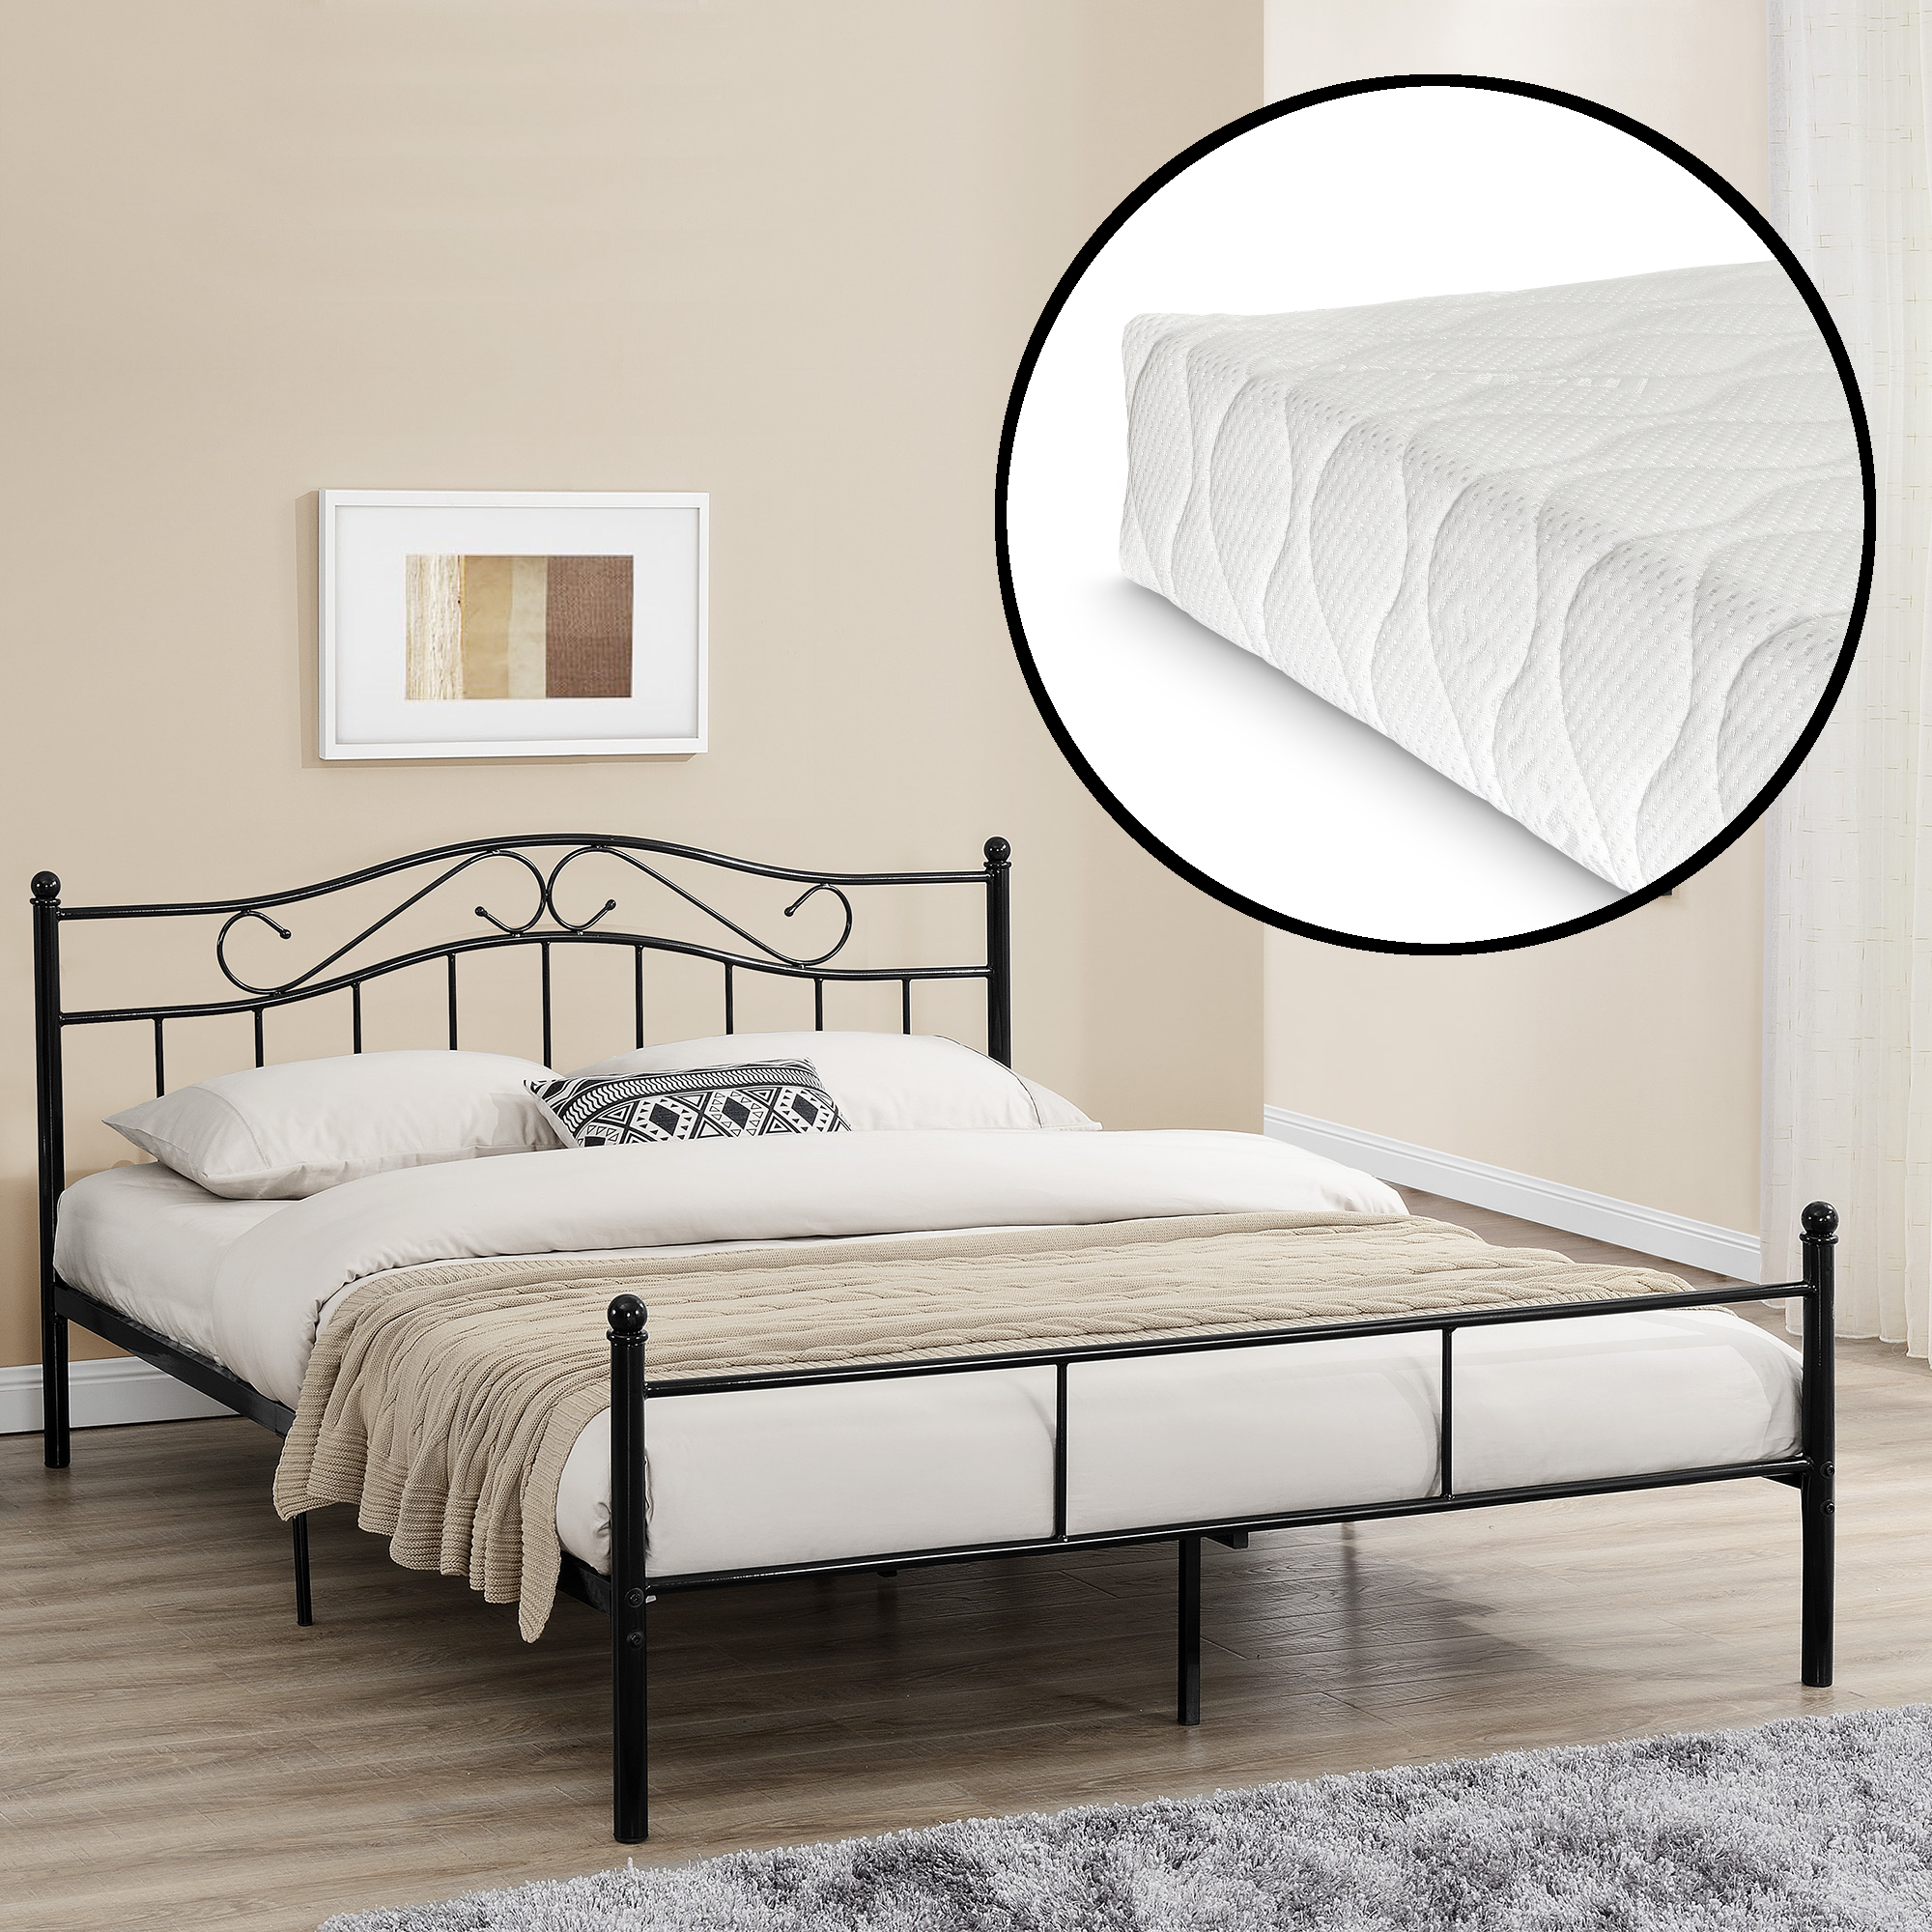 lit en m tal avec matelas 200x200cm noir lit. Black Bedroom Furniture Sets. Home Design Ideas